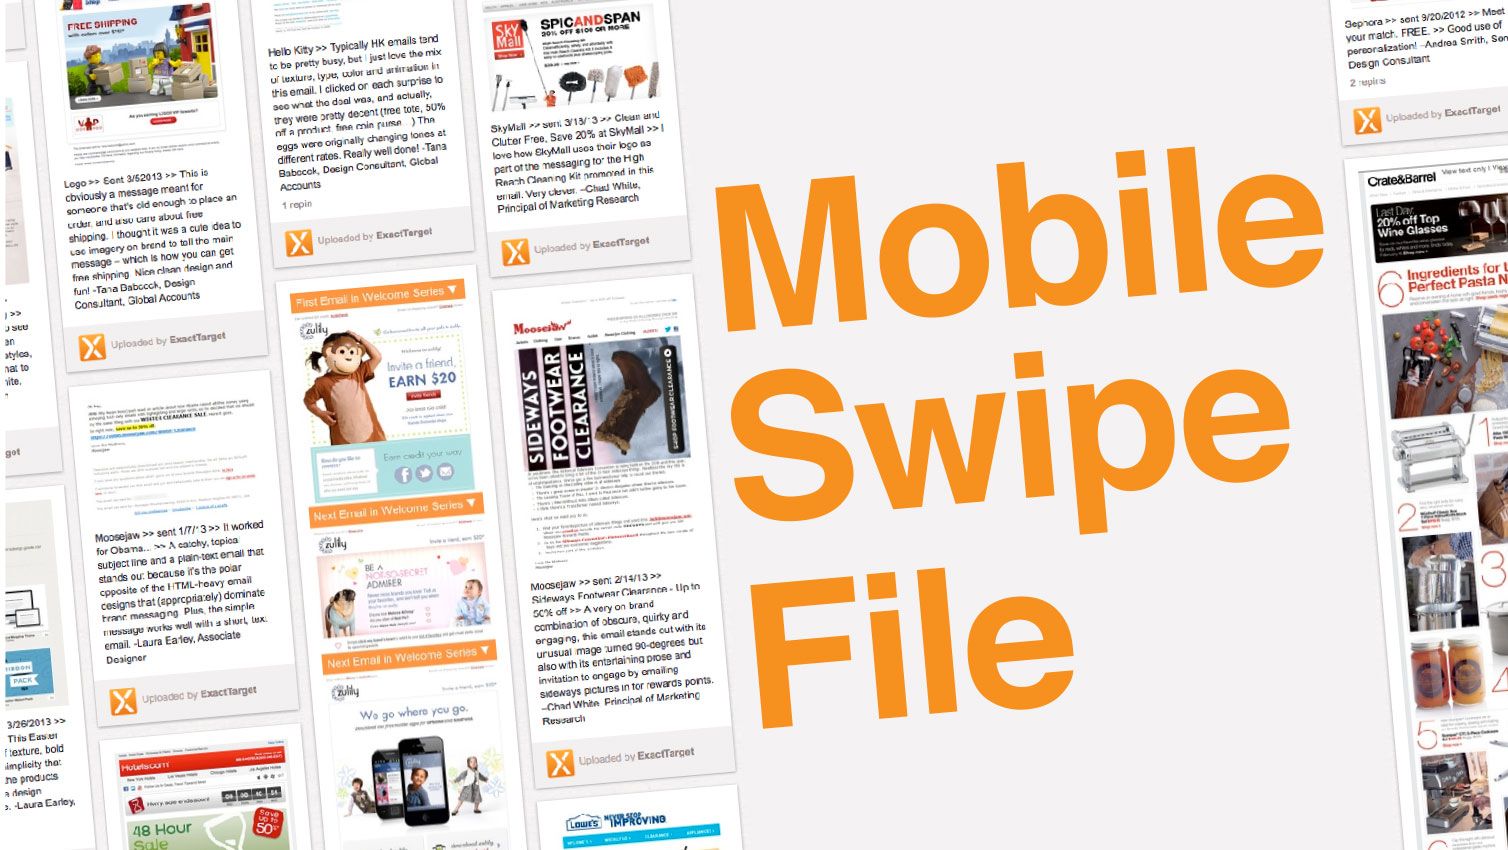 Get Inspired by the NEW Mobile Swipe File